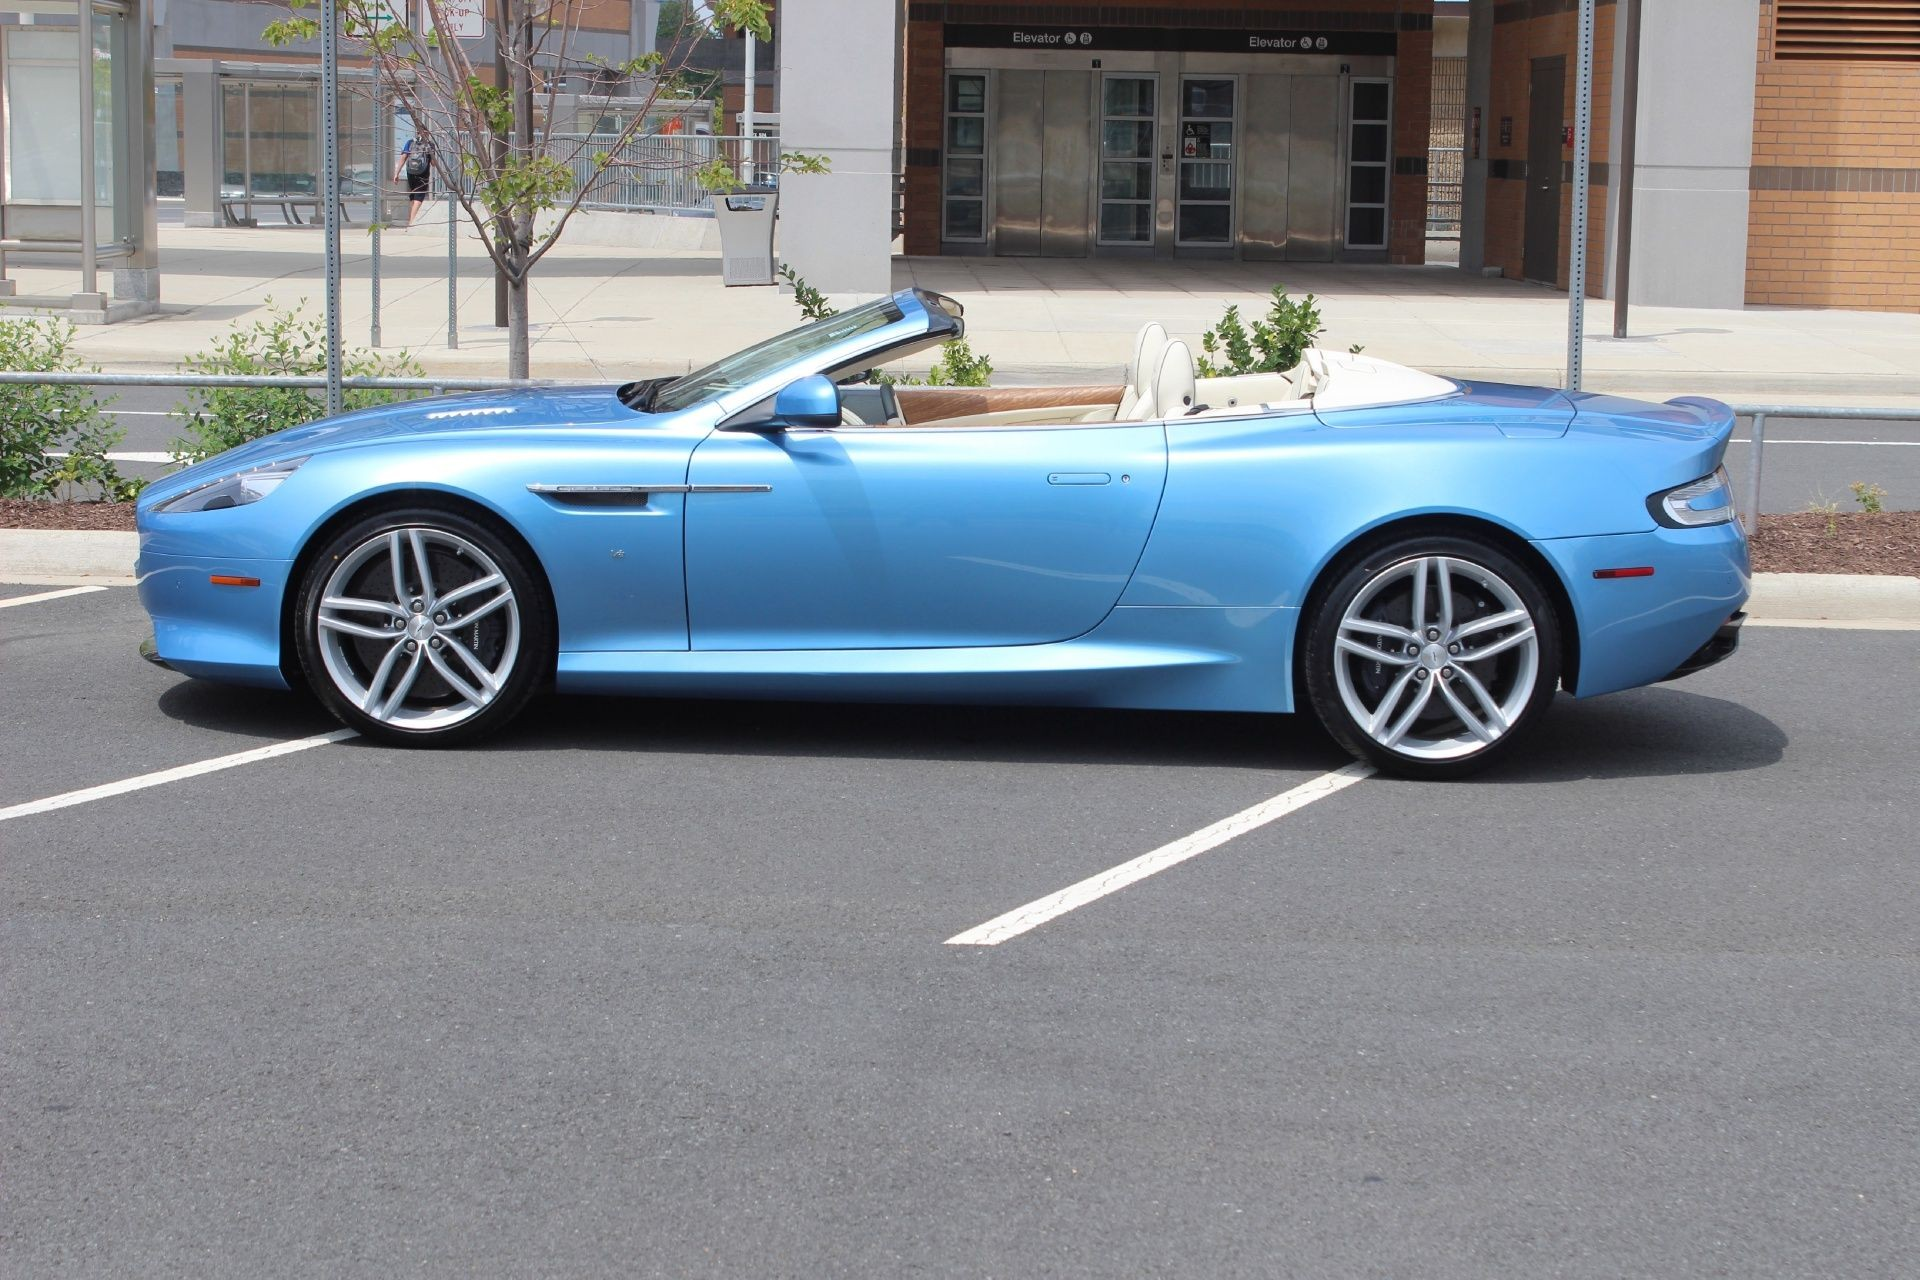 The best color there is for an Aston Martin DB9 GT Volante AstonMartin DB9 GT Volante ExclusiveAutomotiveGroup AstonMartinWashingtonDC ForSale